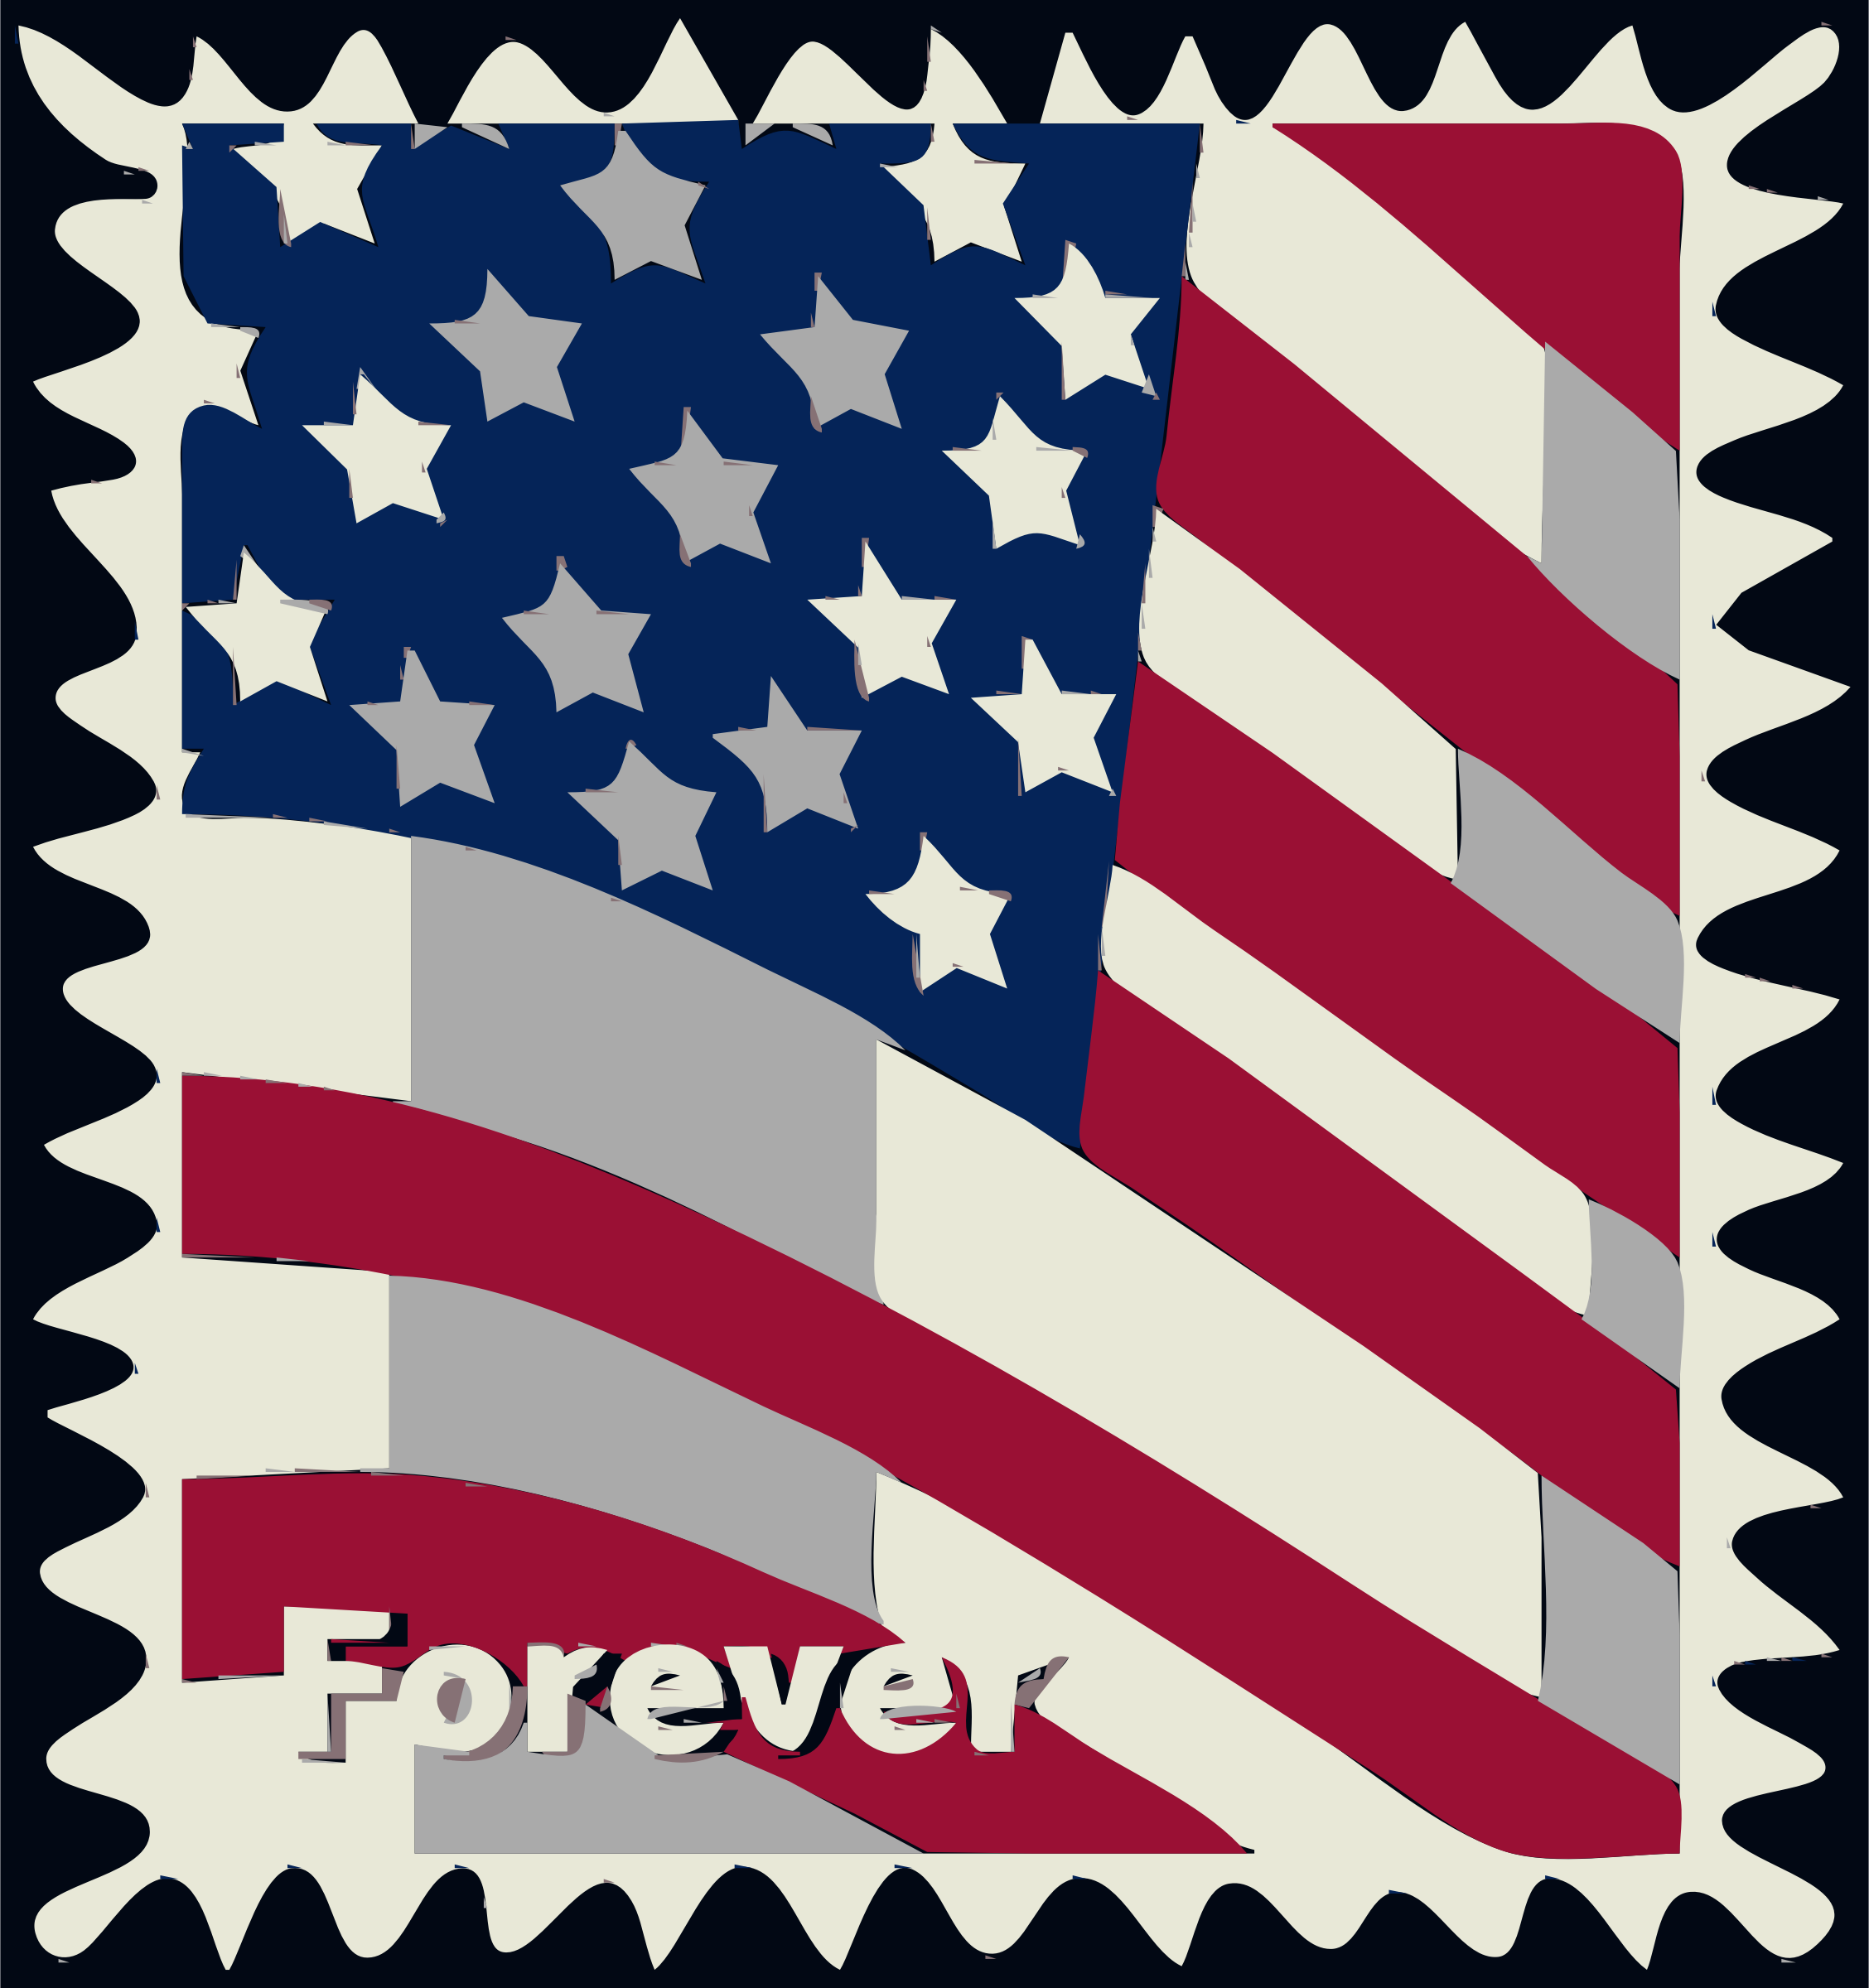 Free cliparts download clip. Stamp clipart postage stamp